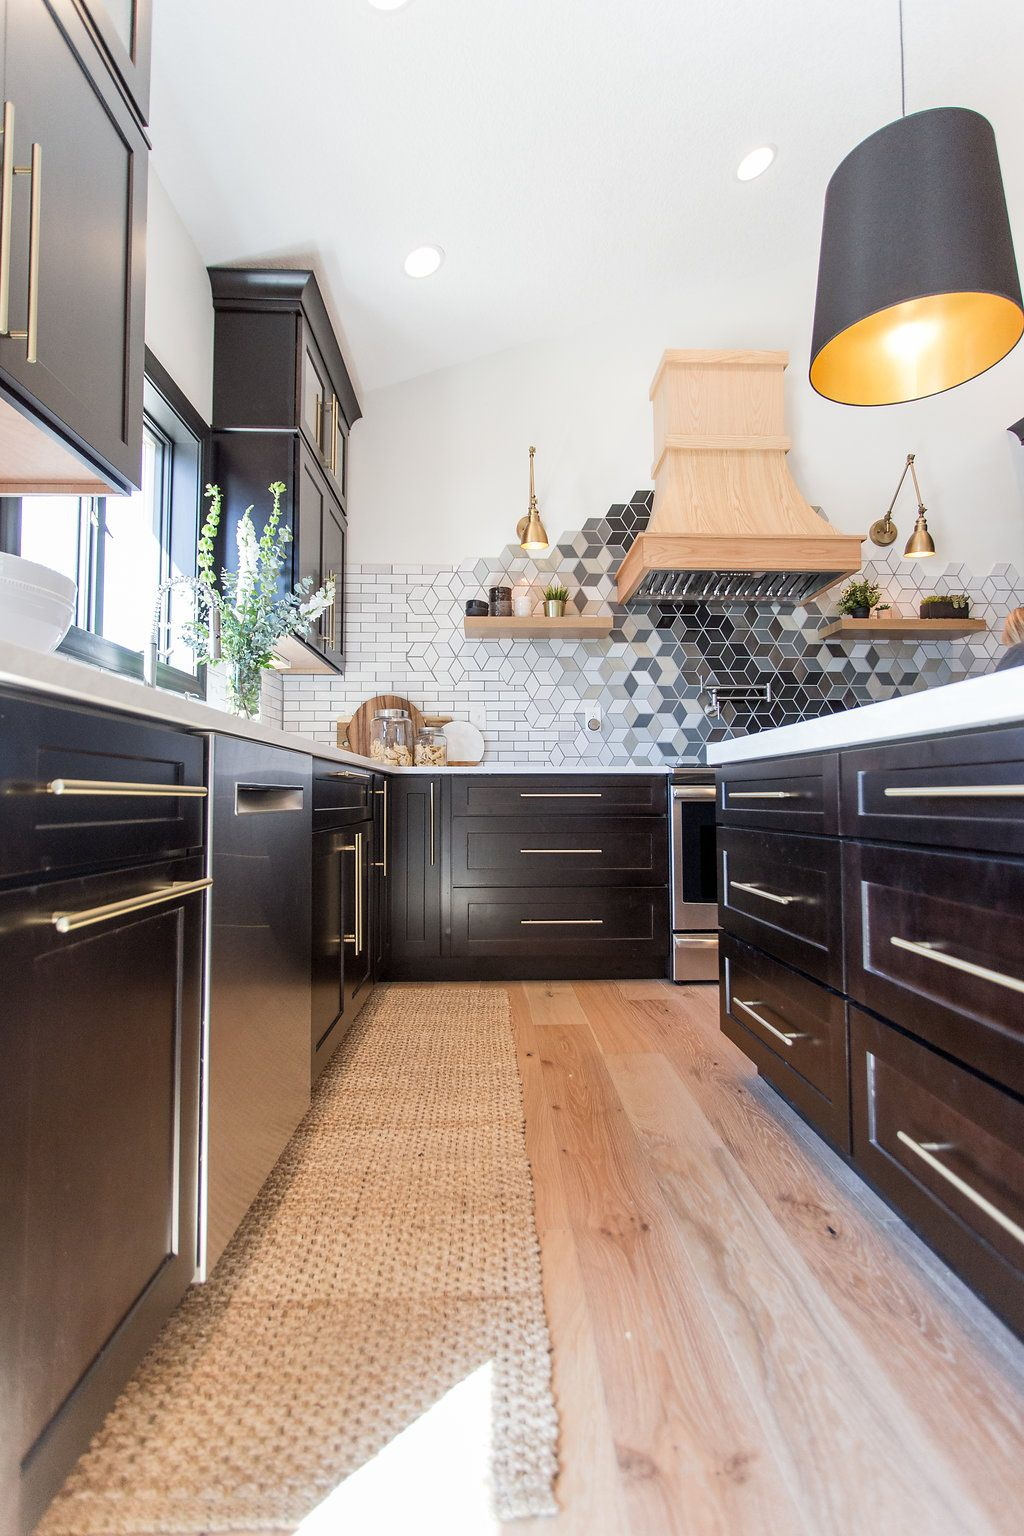 Our Kitchen Remodel Diy Blog Group Board Pinterest How To Lay A Hardwood Floor Floors Construction2style